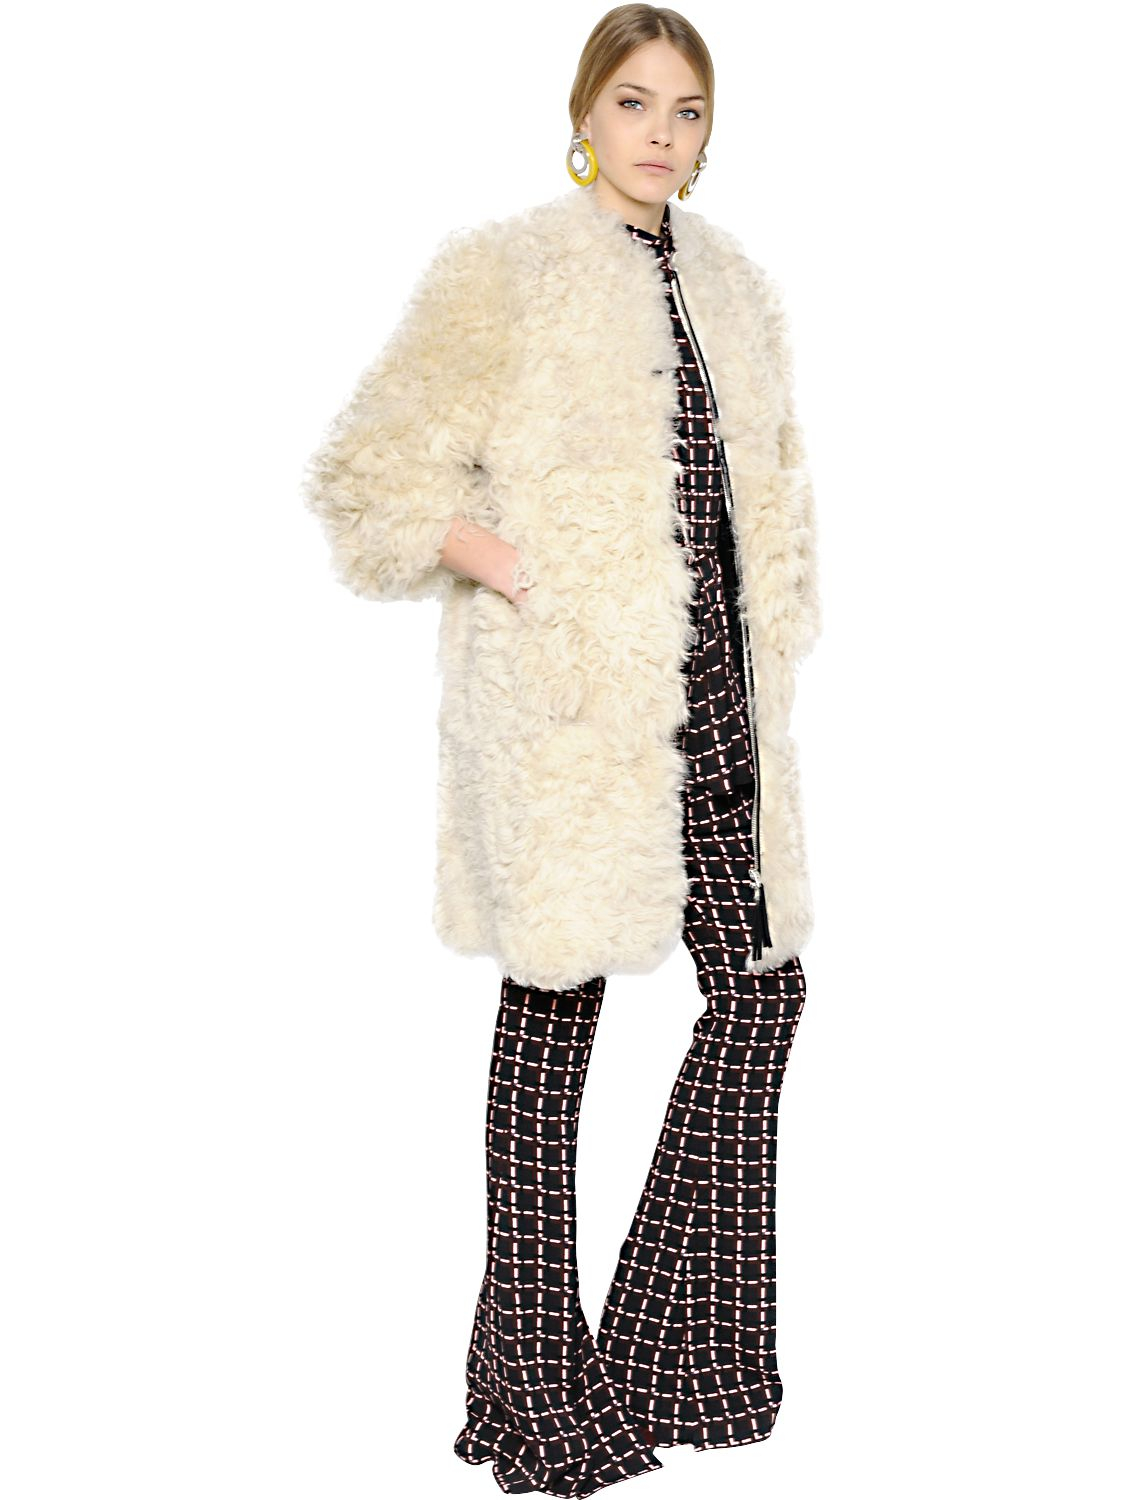 Marni Curly Shearling Coat in Natural | Lyst